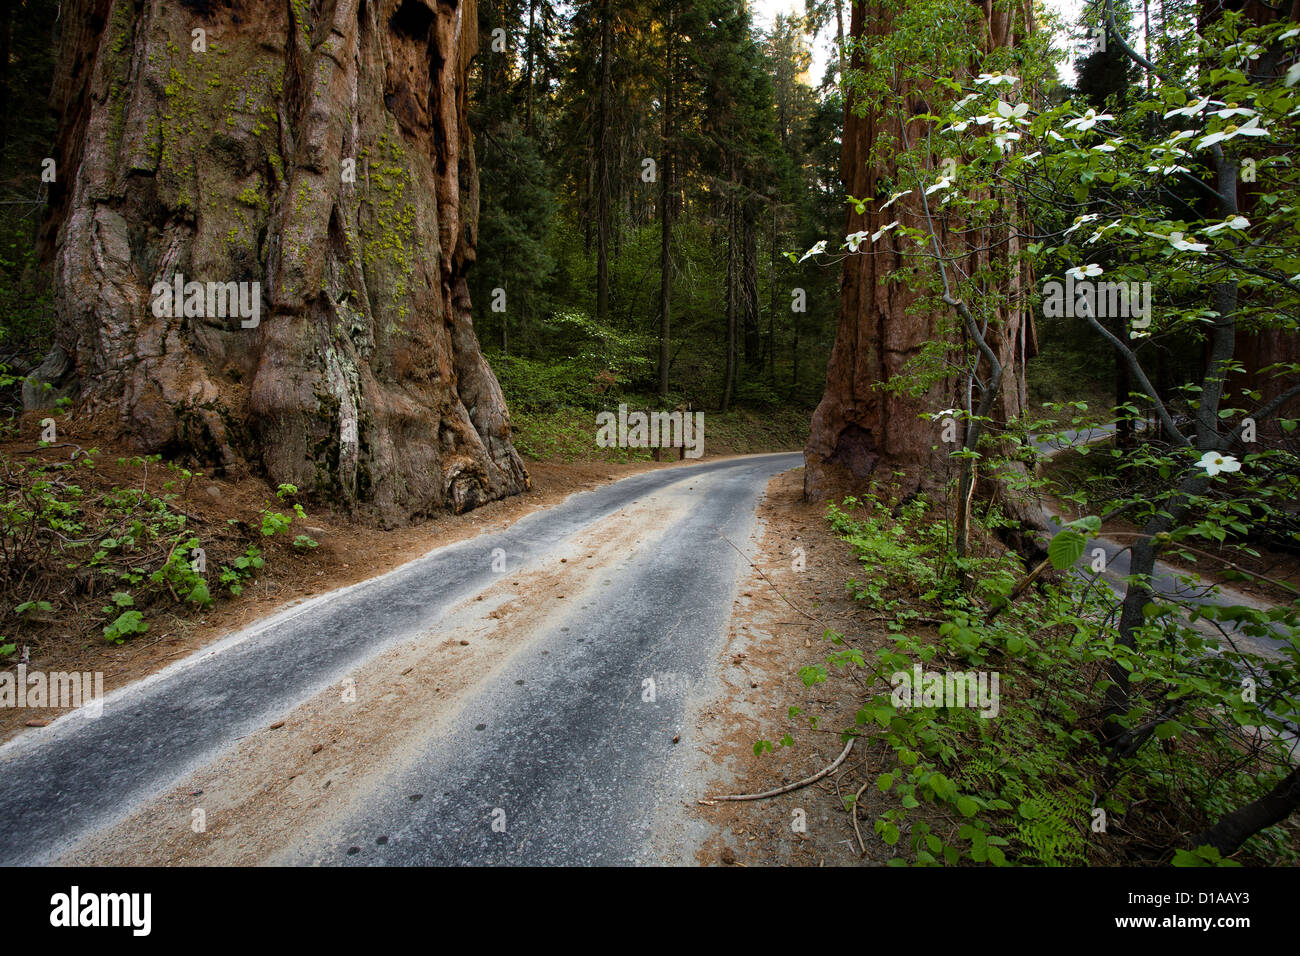 Dogwood flowers and giant redwoods along Generals Highway